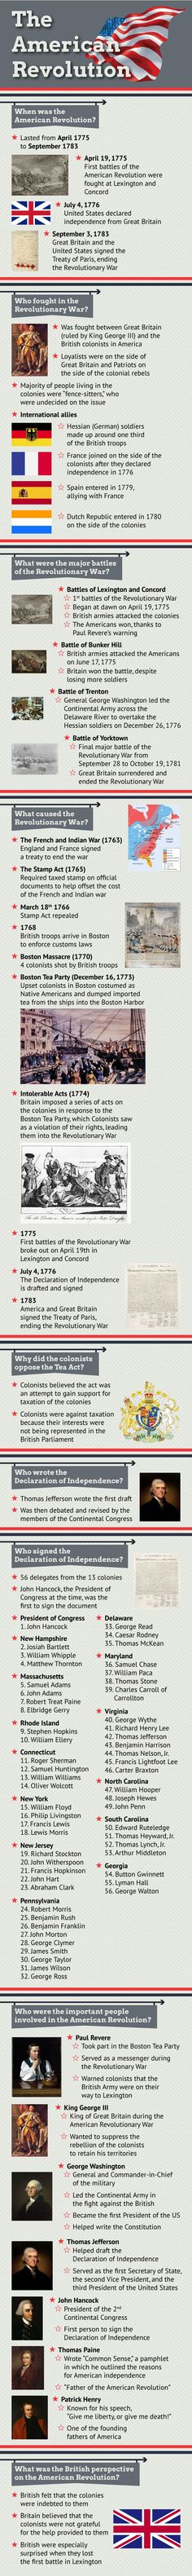 The American Revolution. Revolutionary War Basic Facts: when was it? who was involved? why did it happen? Us History, History Facts, Family History, American History, History Timeline, History Classroom, Teaching History, American Revolutionary War, Military History